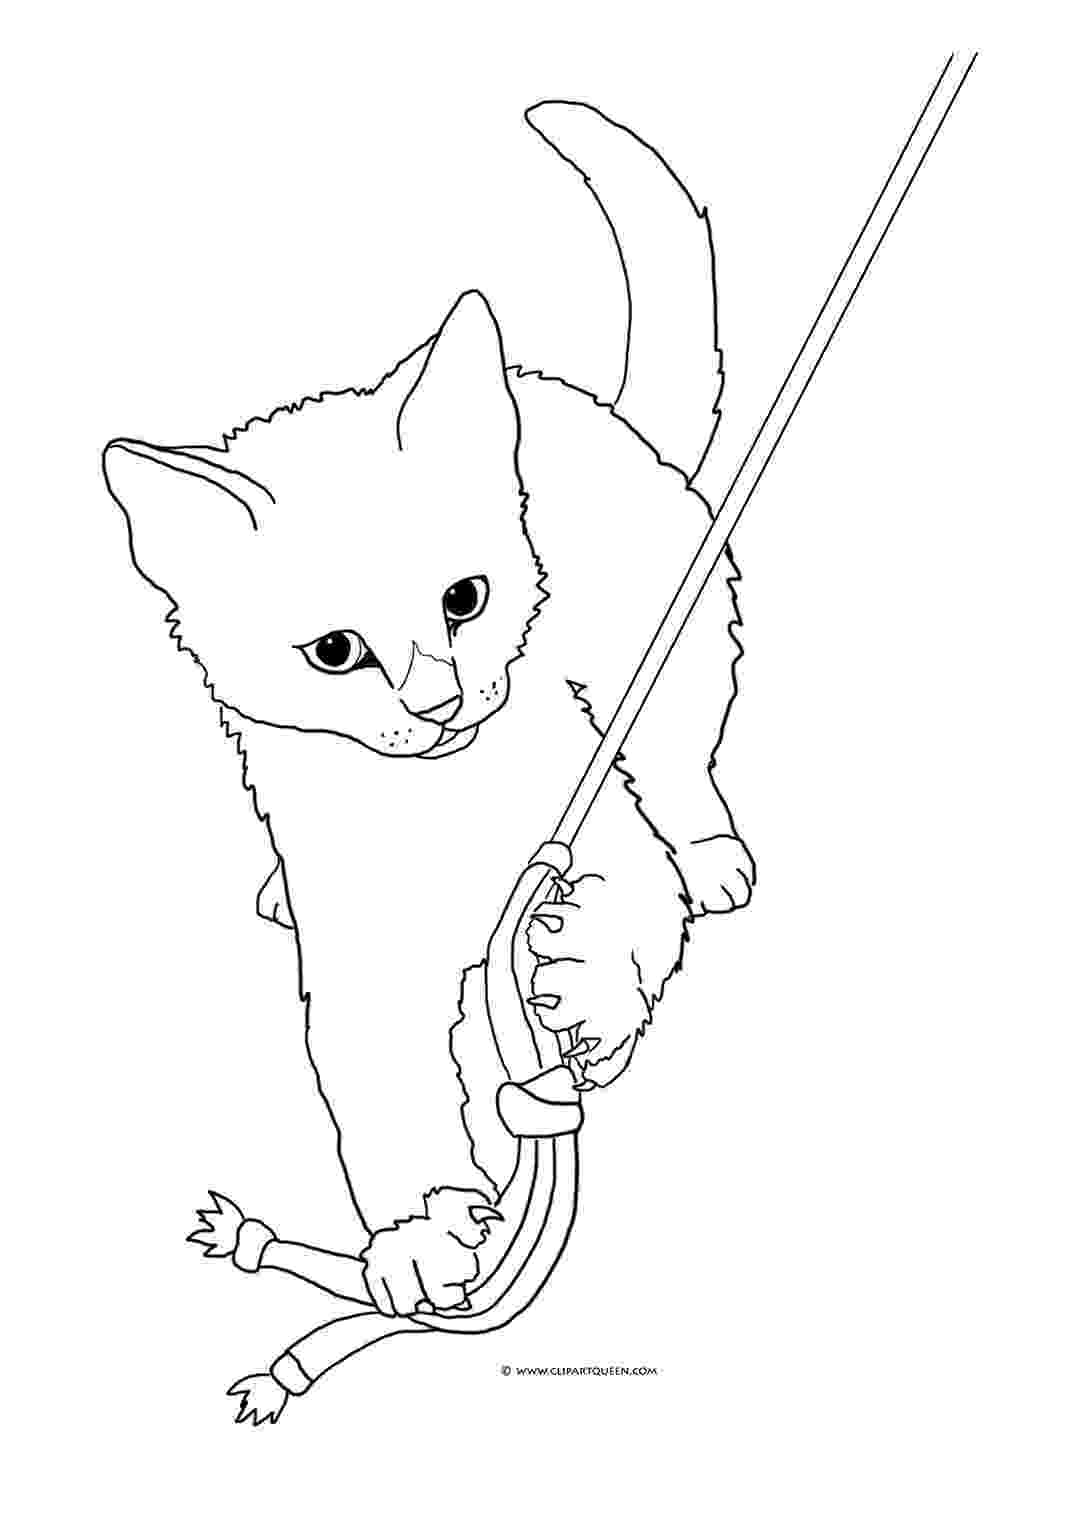 cat coloring book pages cat coloring page free printable coloring pages pages cat book coloring